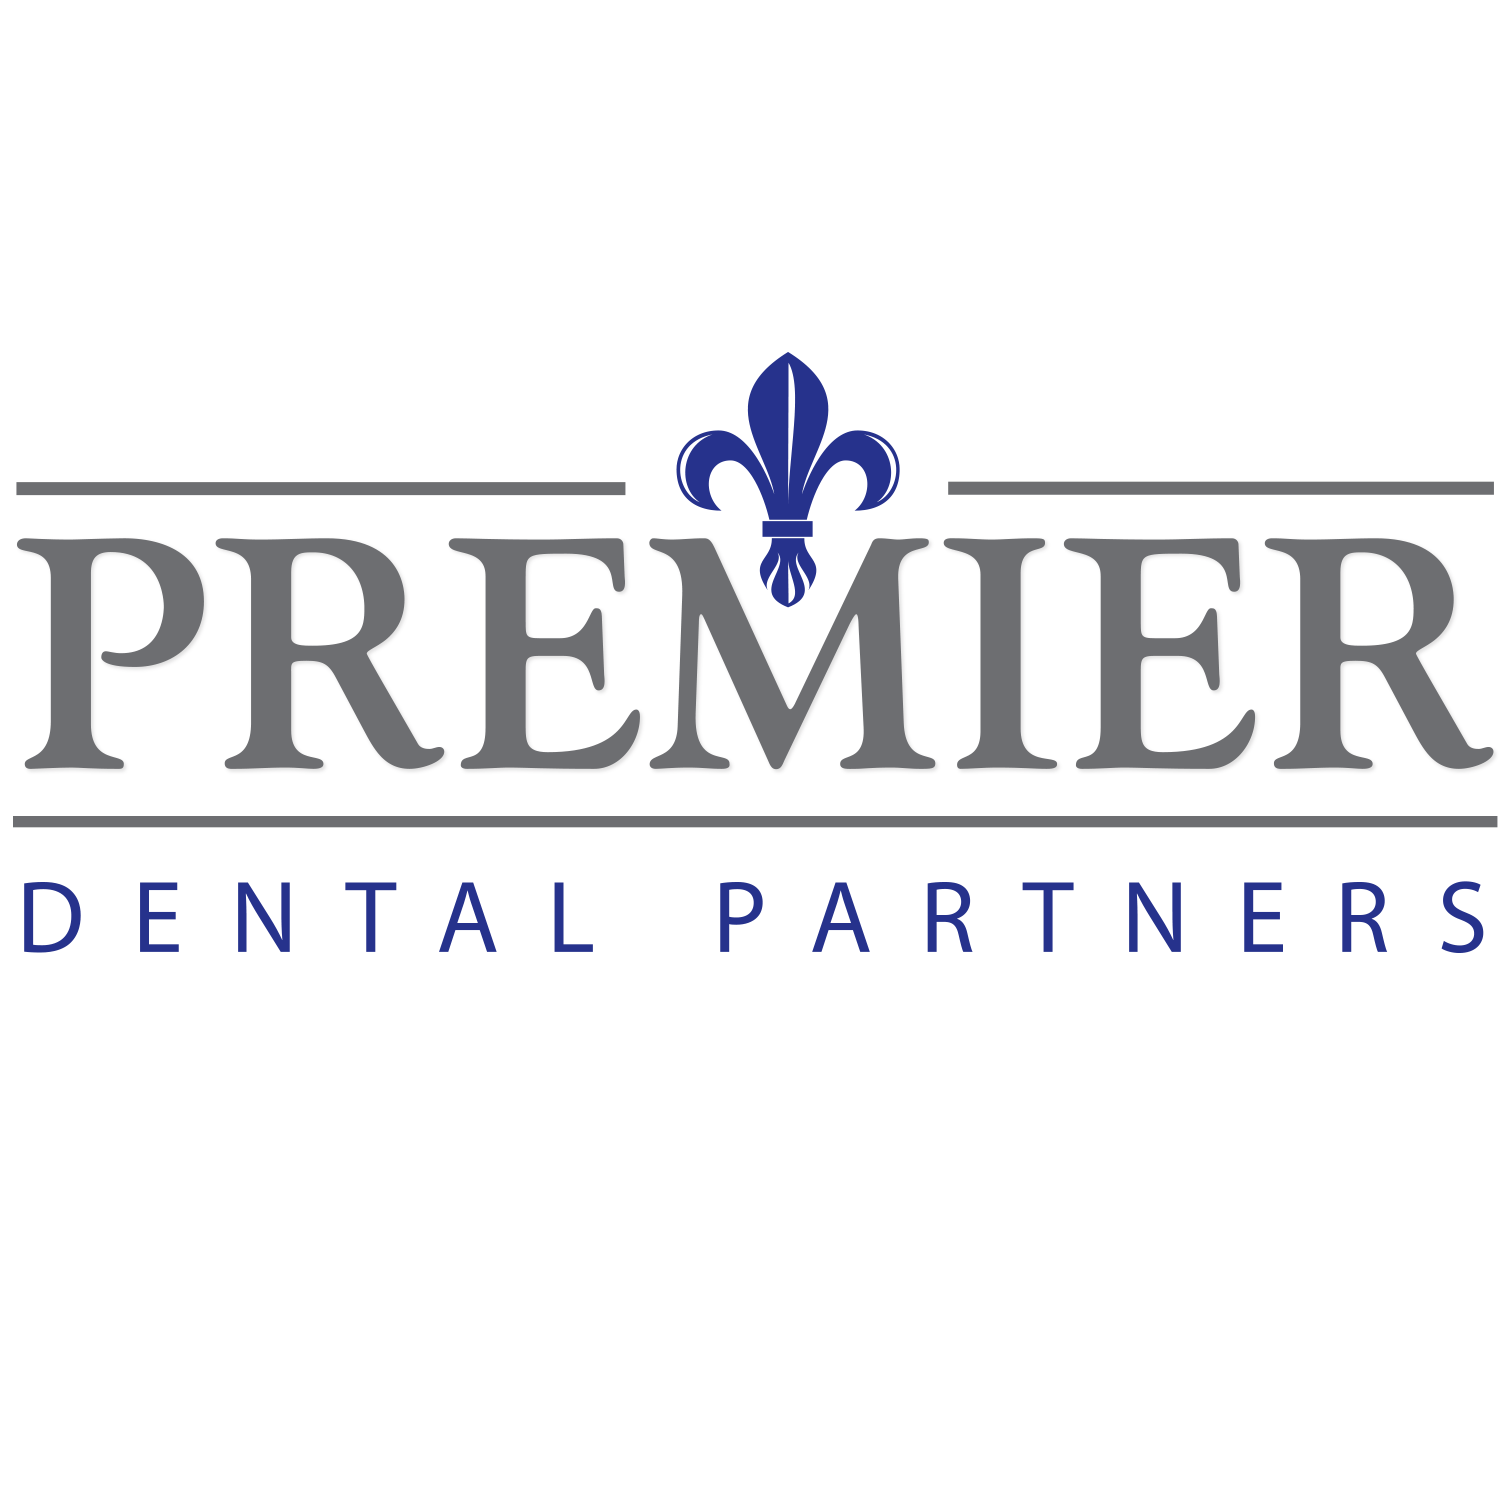 Premier Dental Partners Downtown - St. Louis, MO 63101 - (314)231-6151 | ShowMeLocal.com